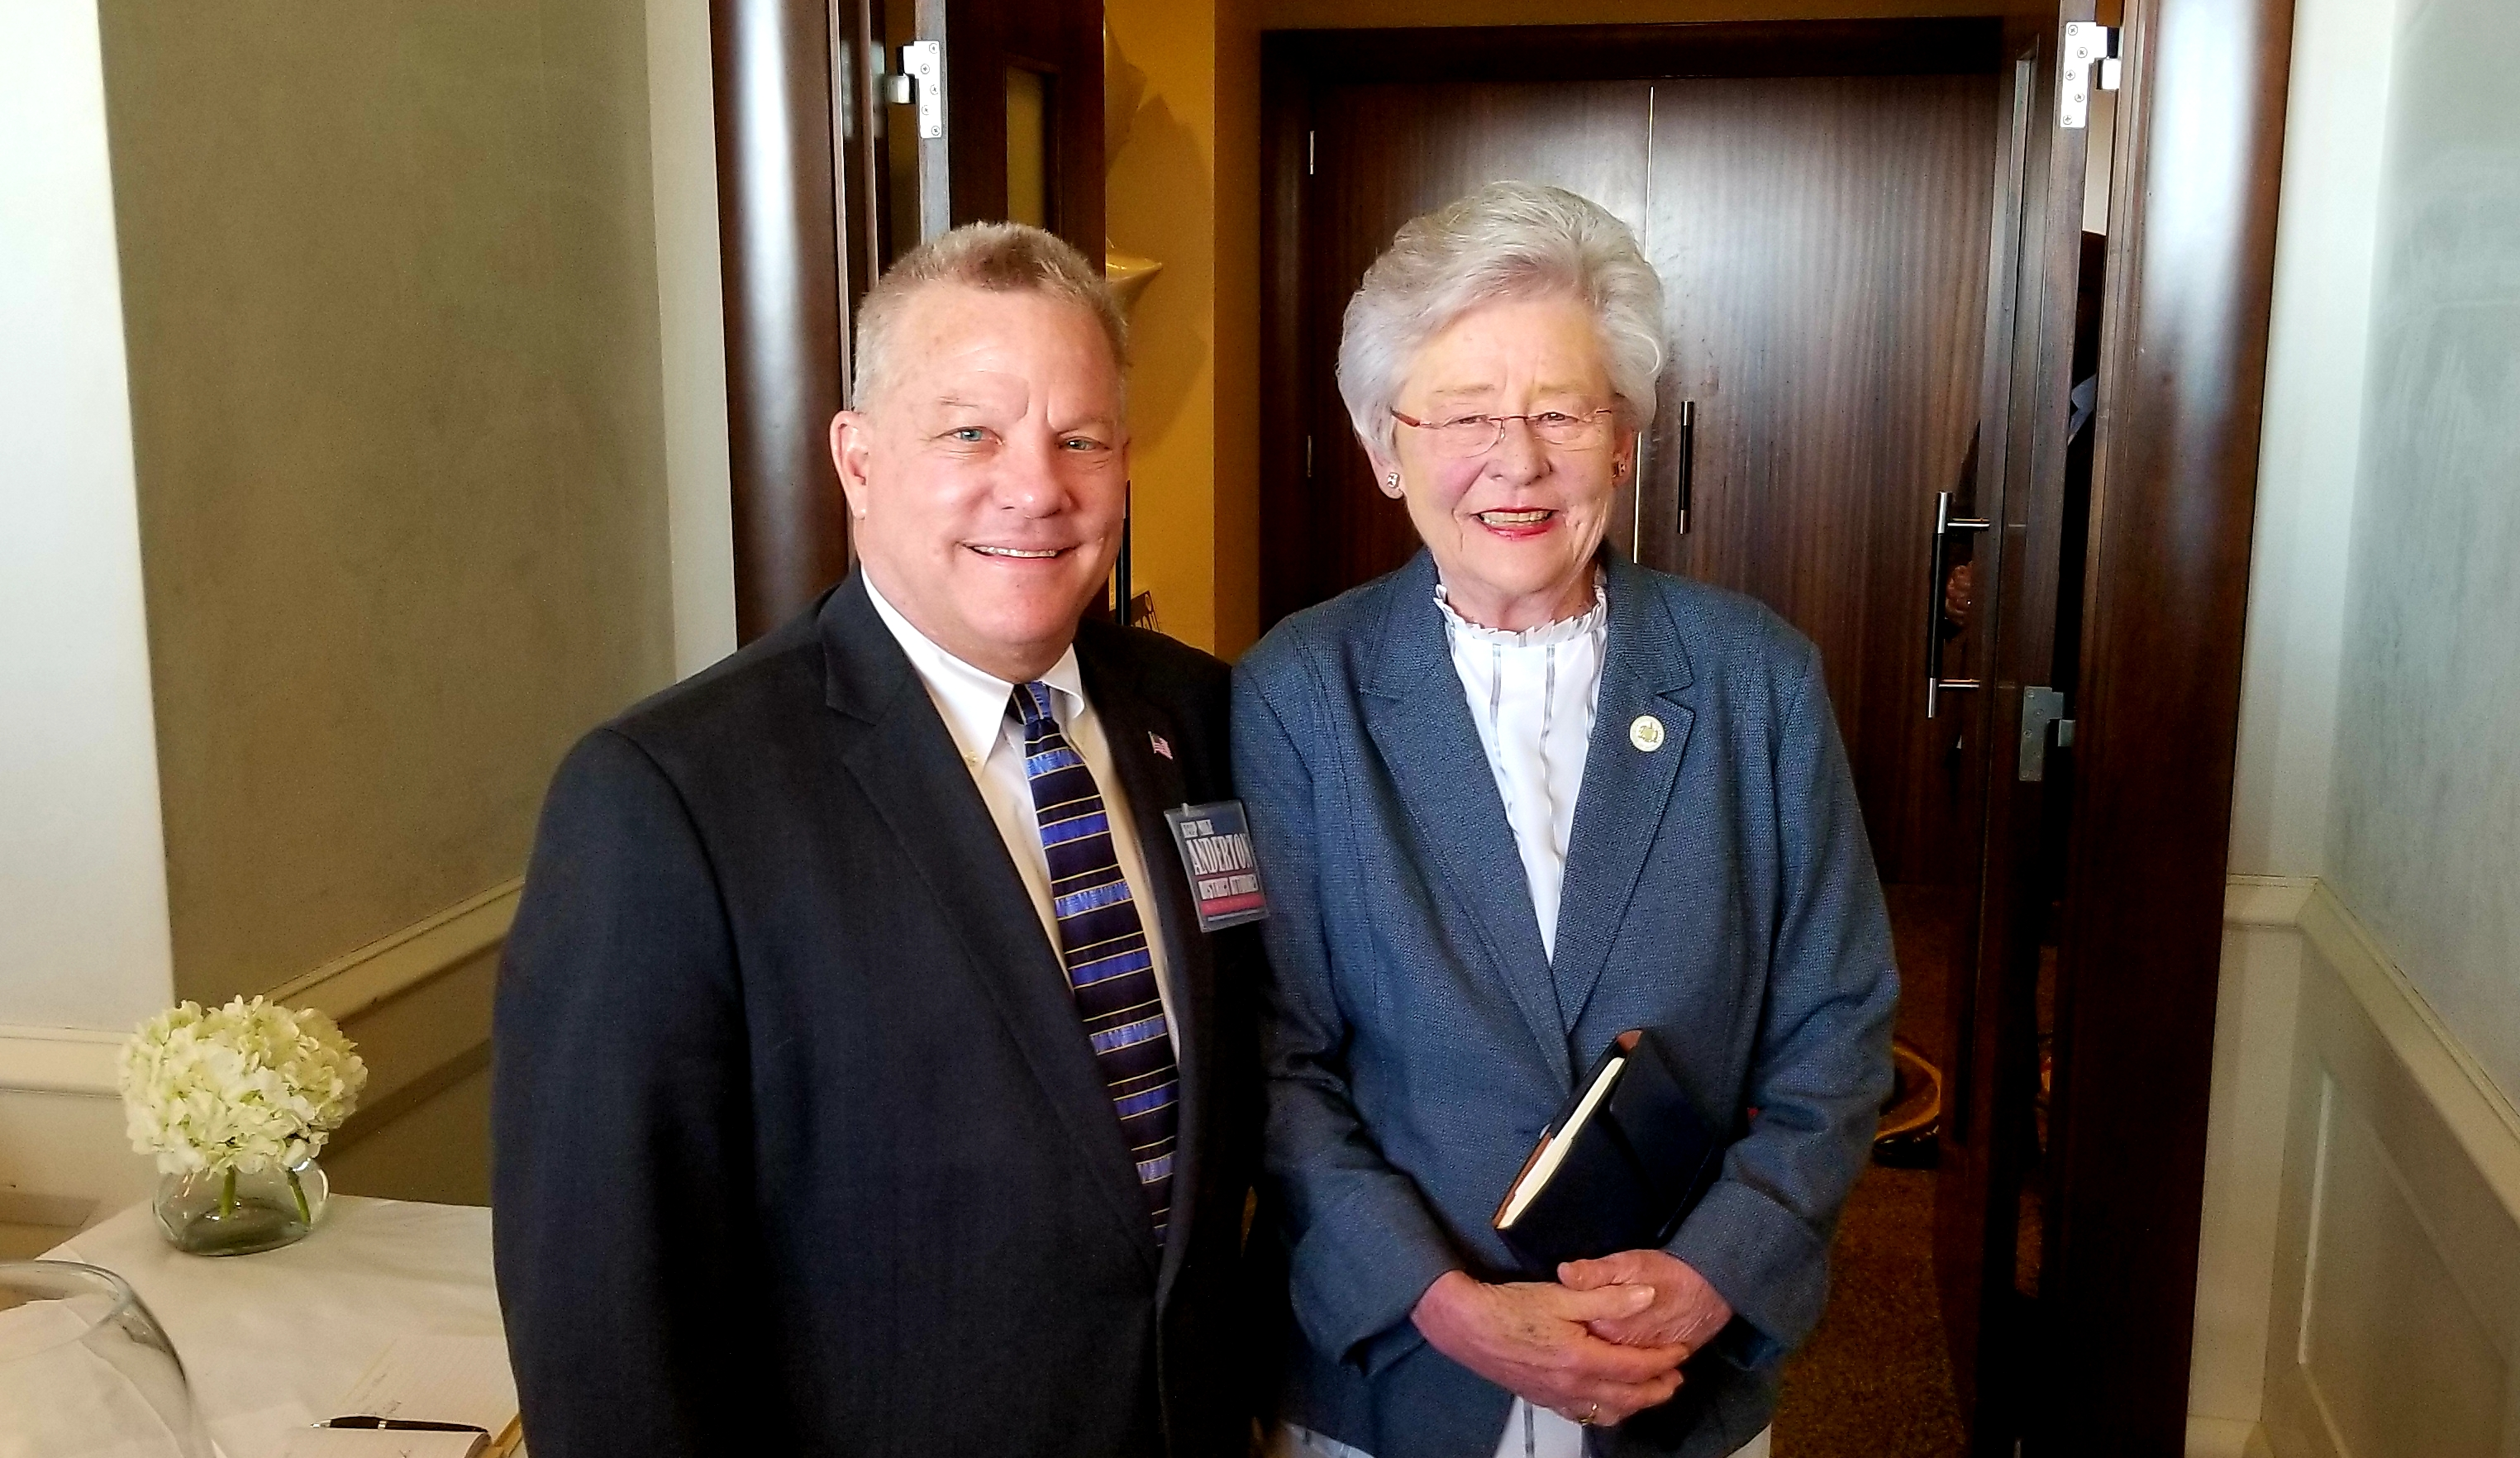 Governor Ivey makes guest appearance at Anderton fundraiser